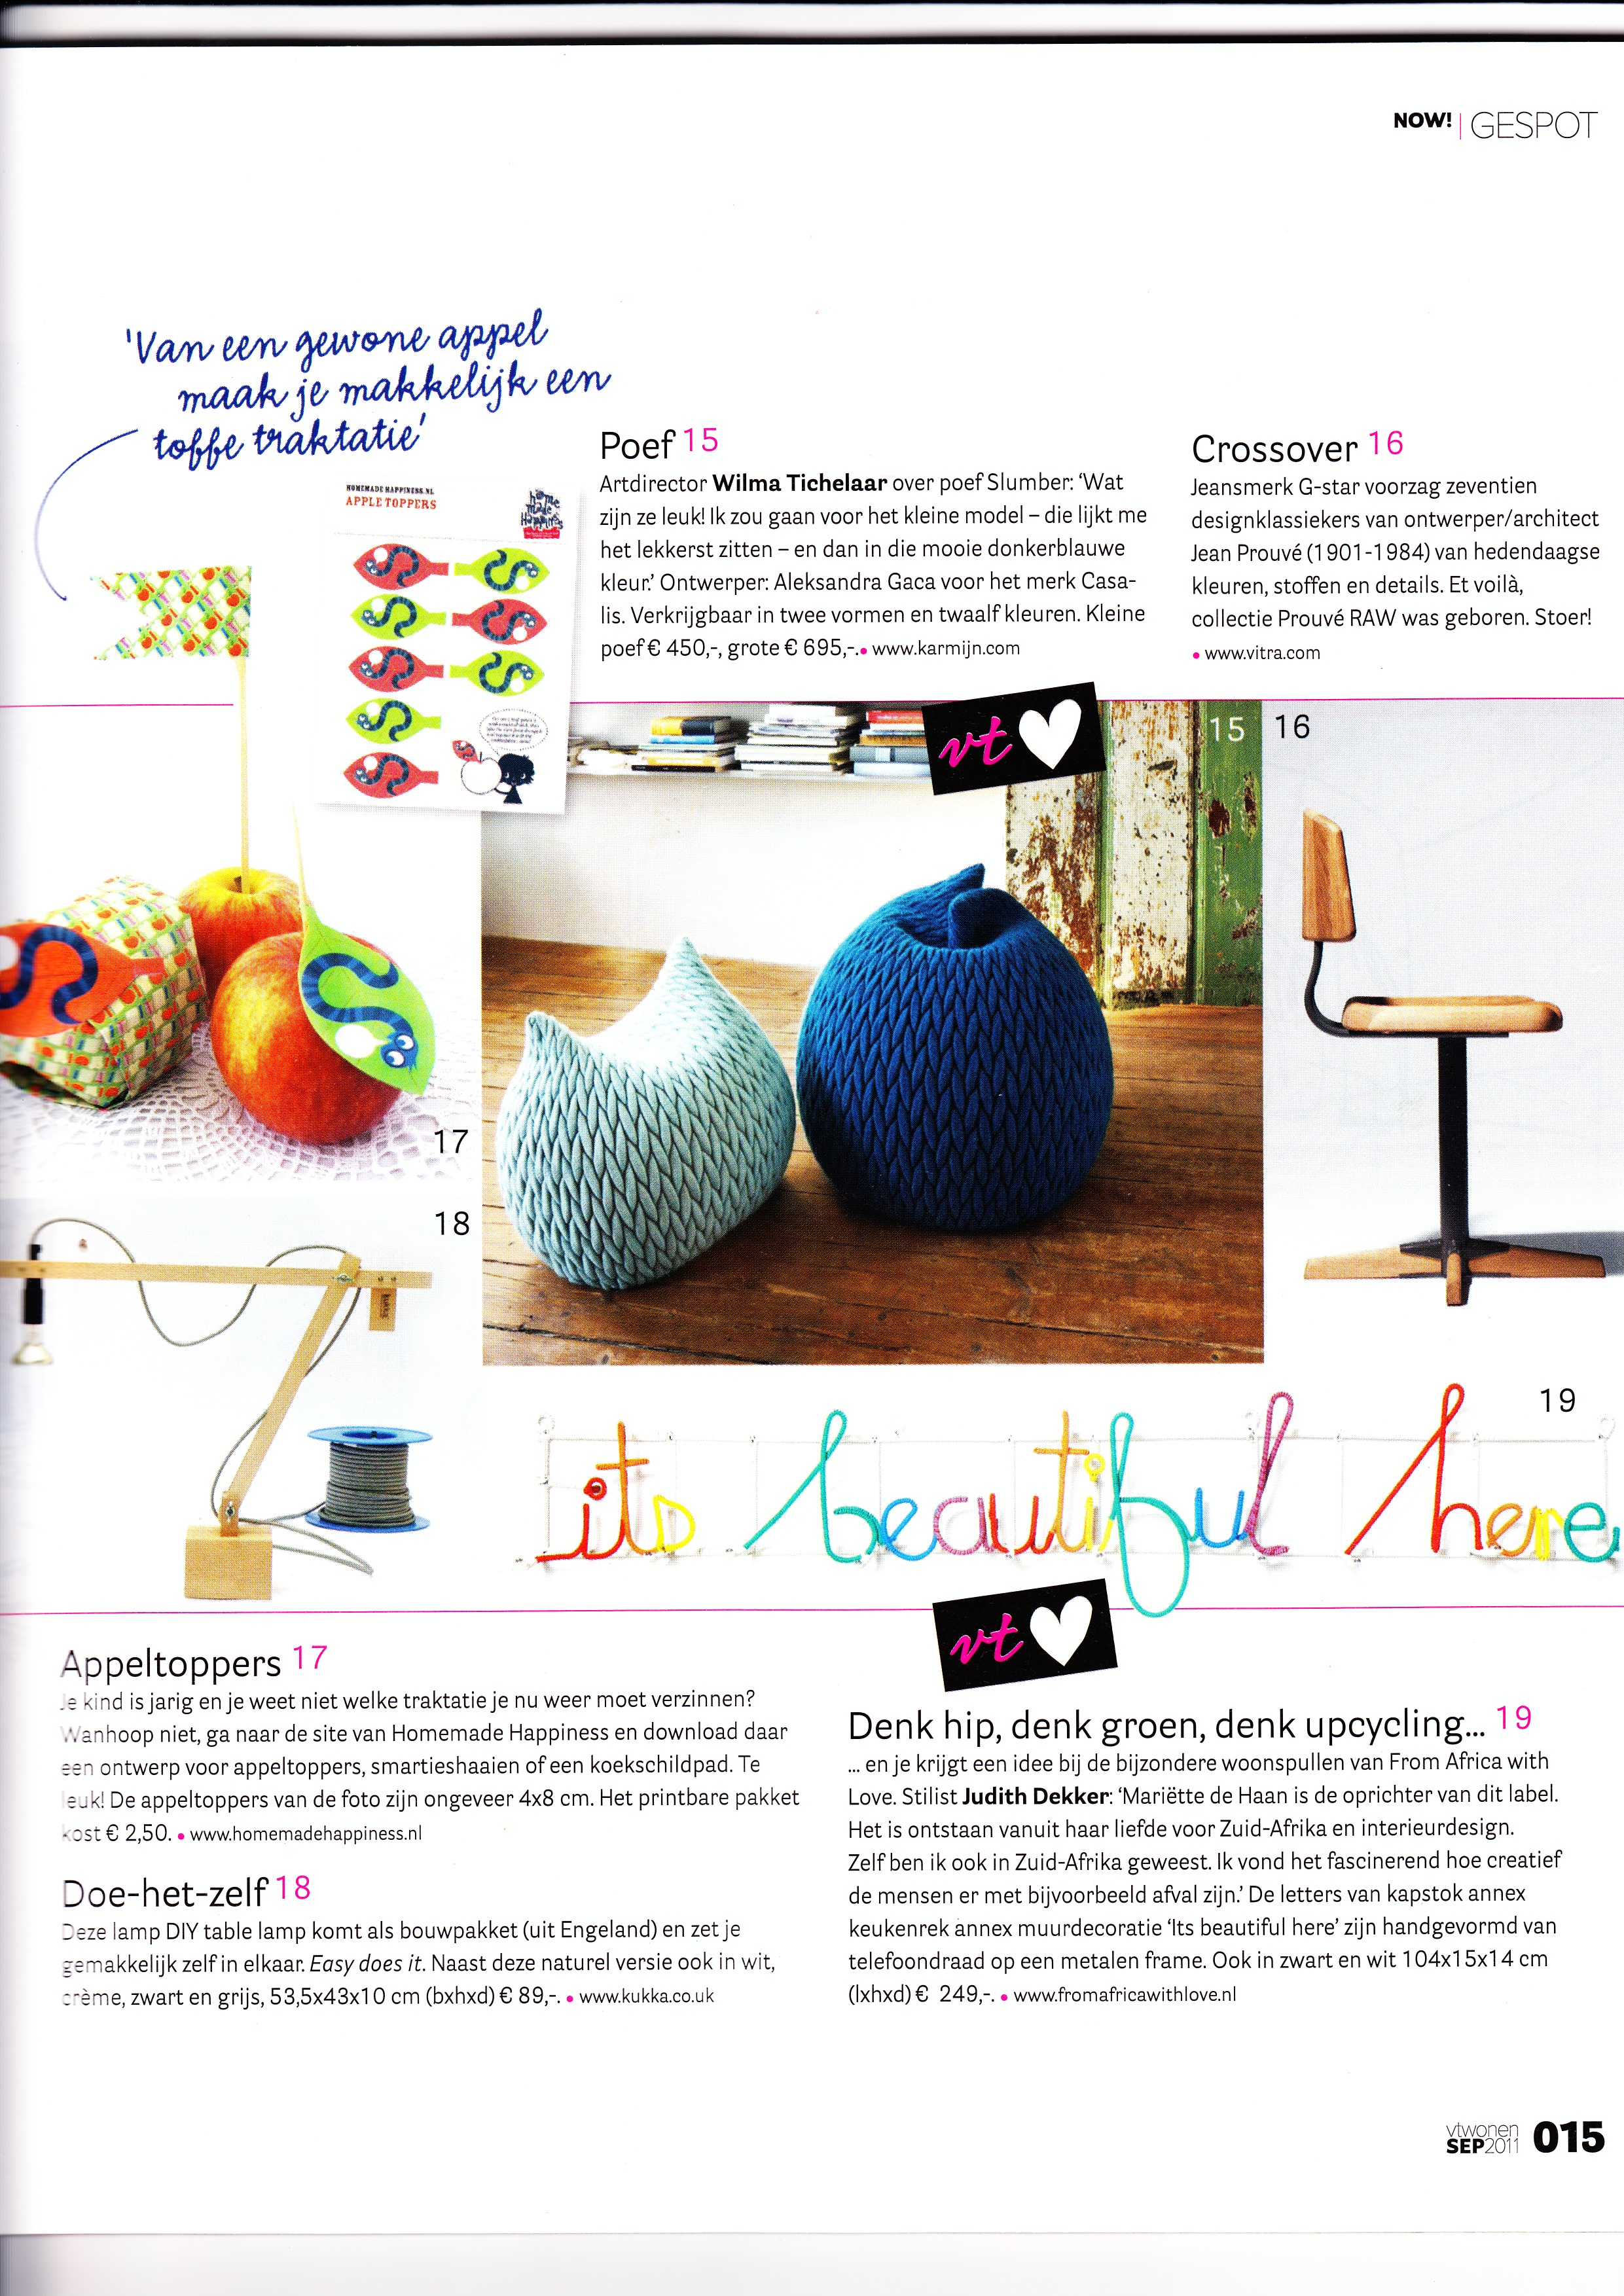 VT Wonen magazine Sept 2011 Its Beautiful Here Editors favourite